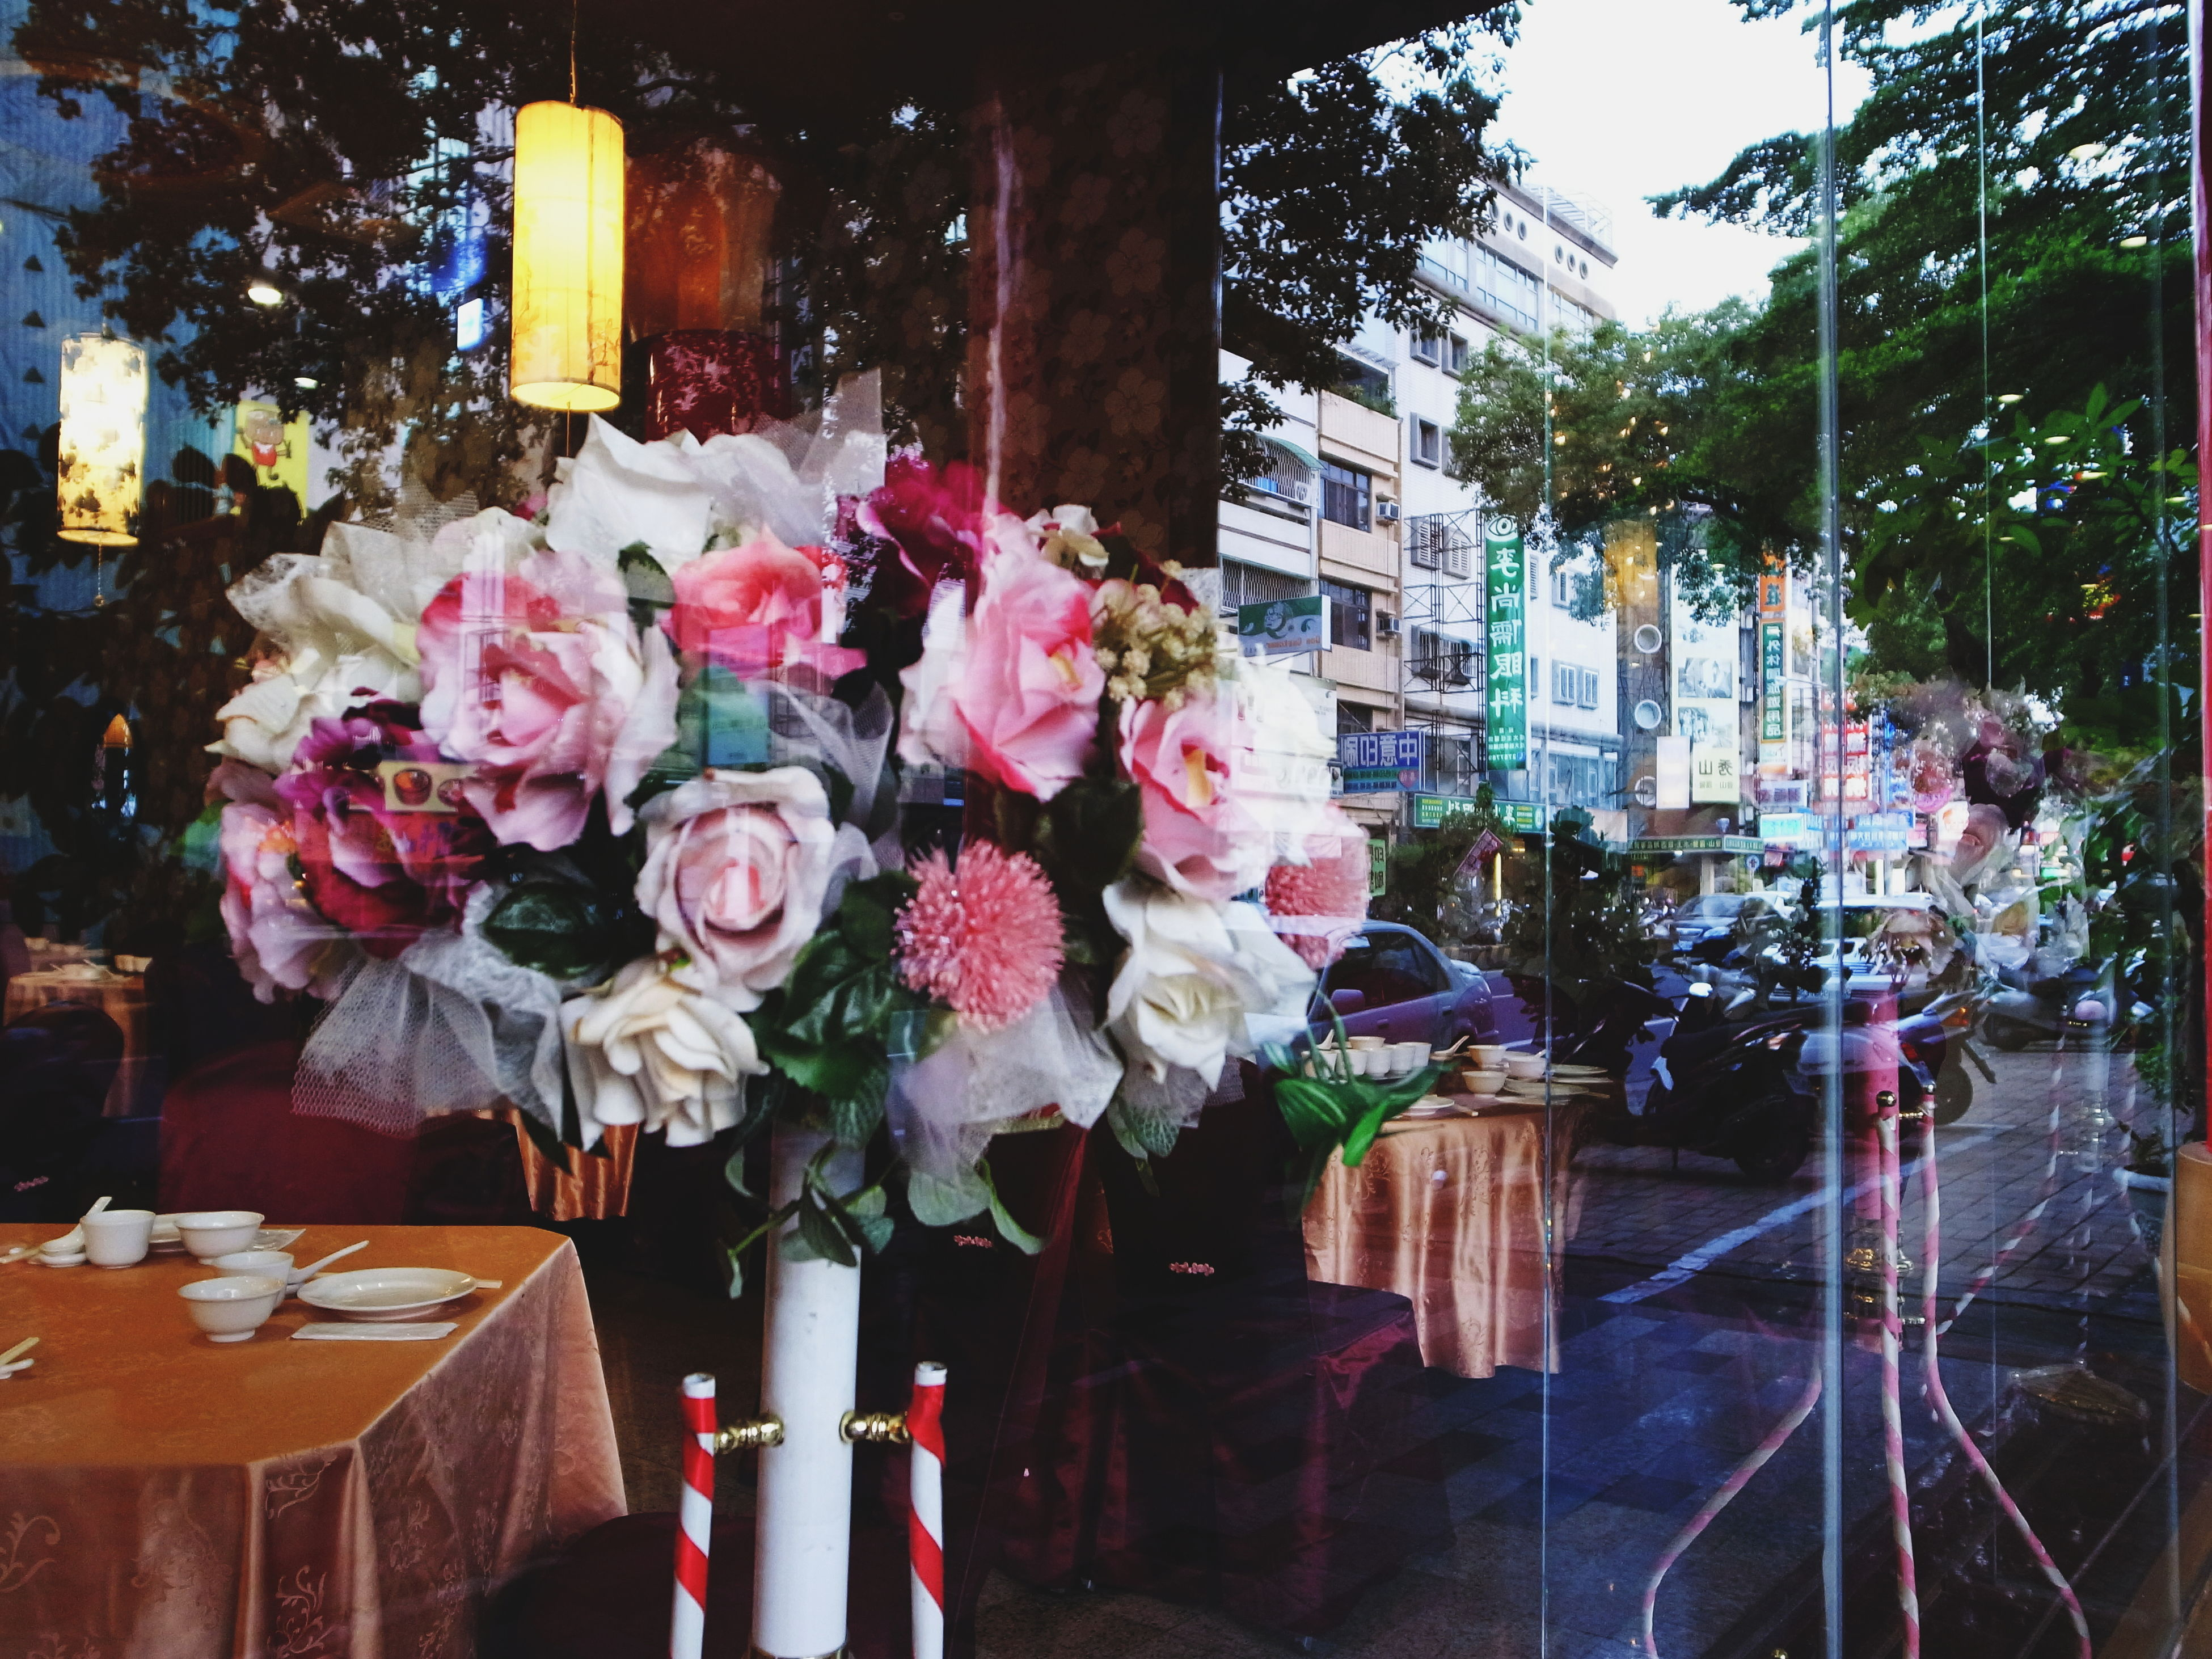 flower, fragility, freshness, petal, decoration, rose - flower, built structure, architecture, bouquet, building exterior, potted plant, vase, flower head, growth, pink color, plant, beauty in nature, blooming, bunch of flowers, nature